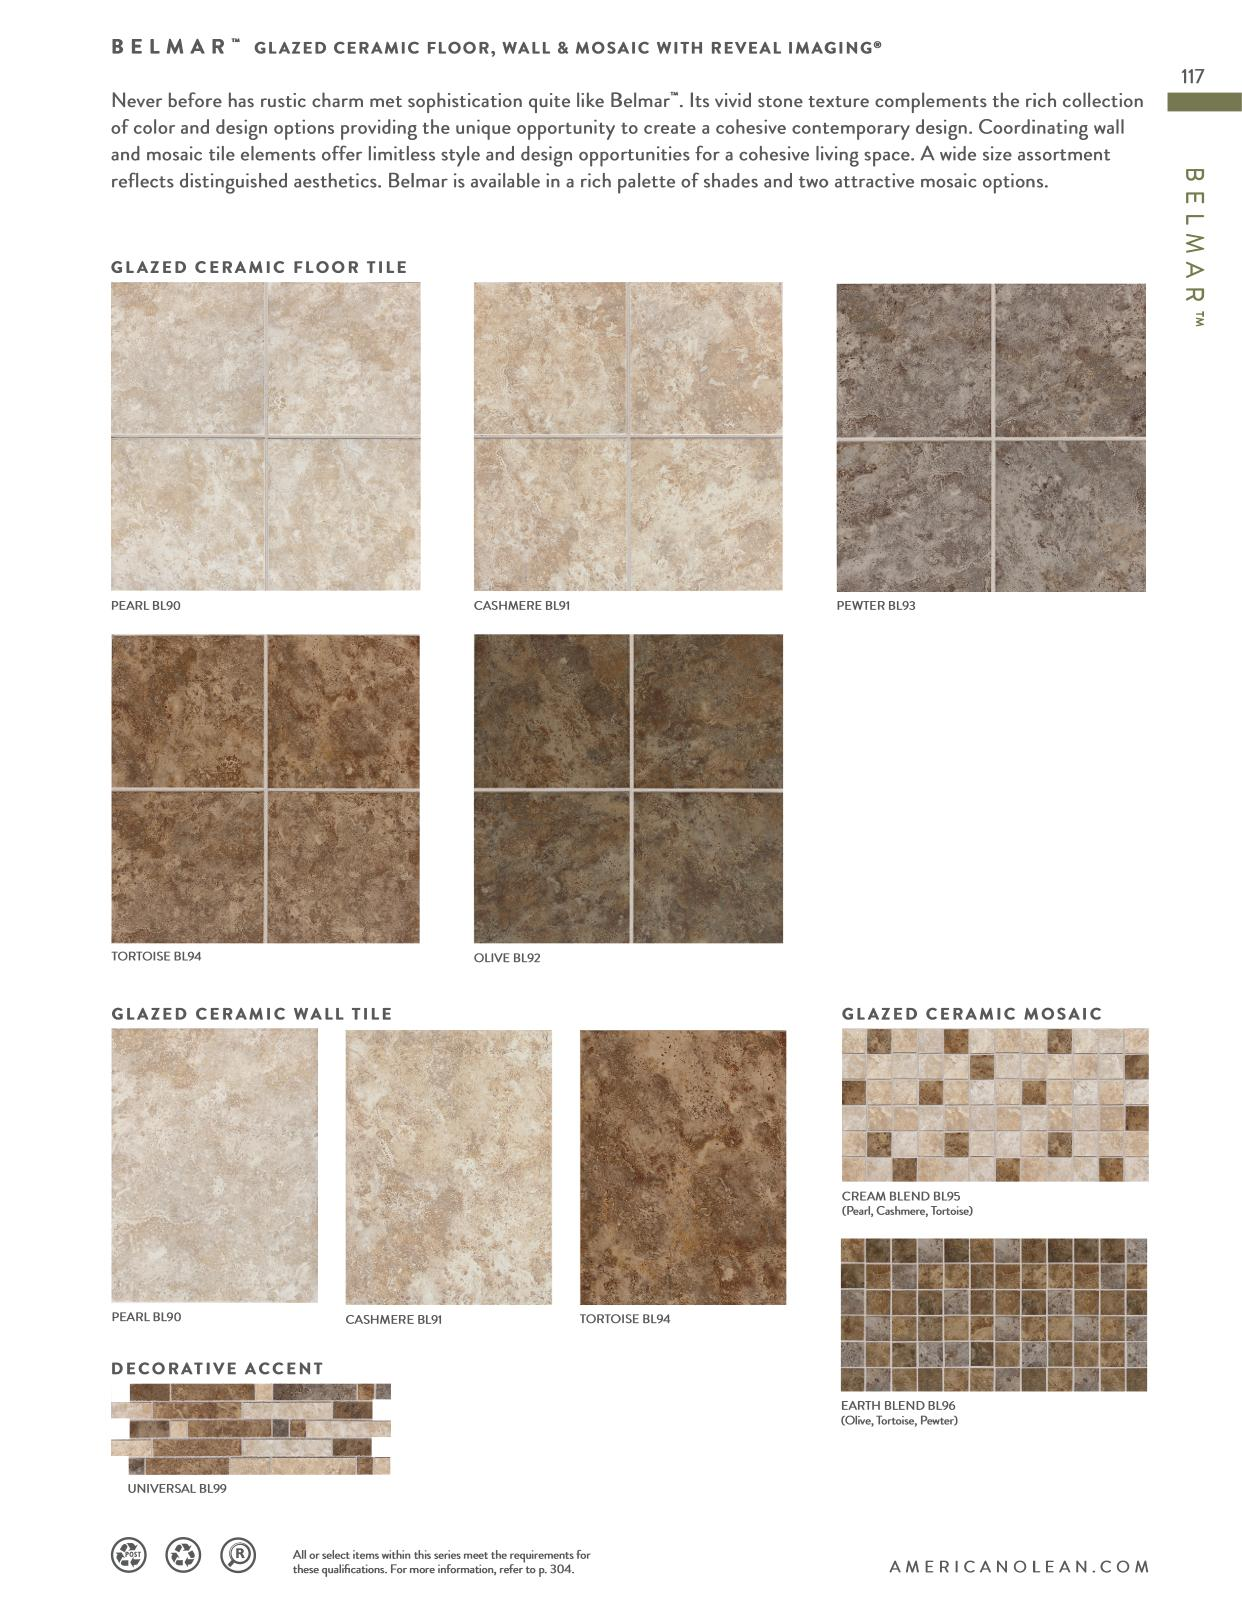 Product Catalog Page 117 Floor Wall Mosaic